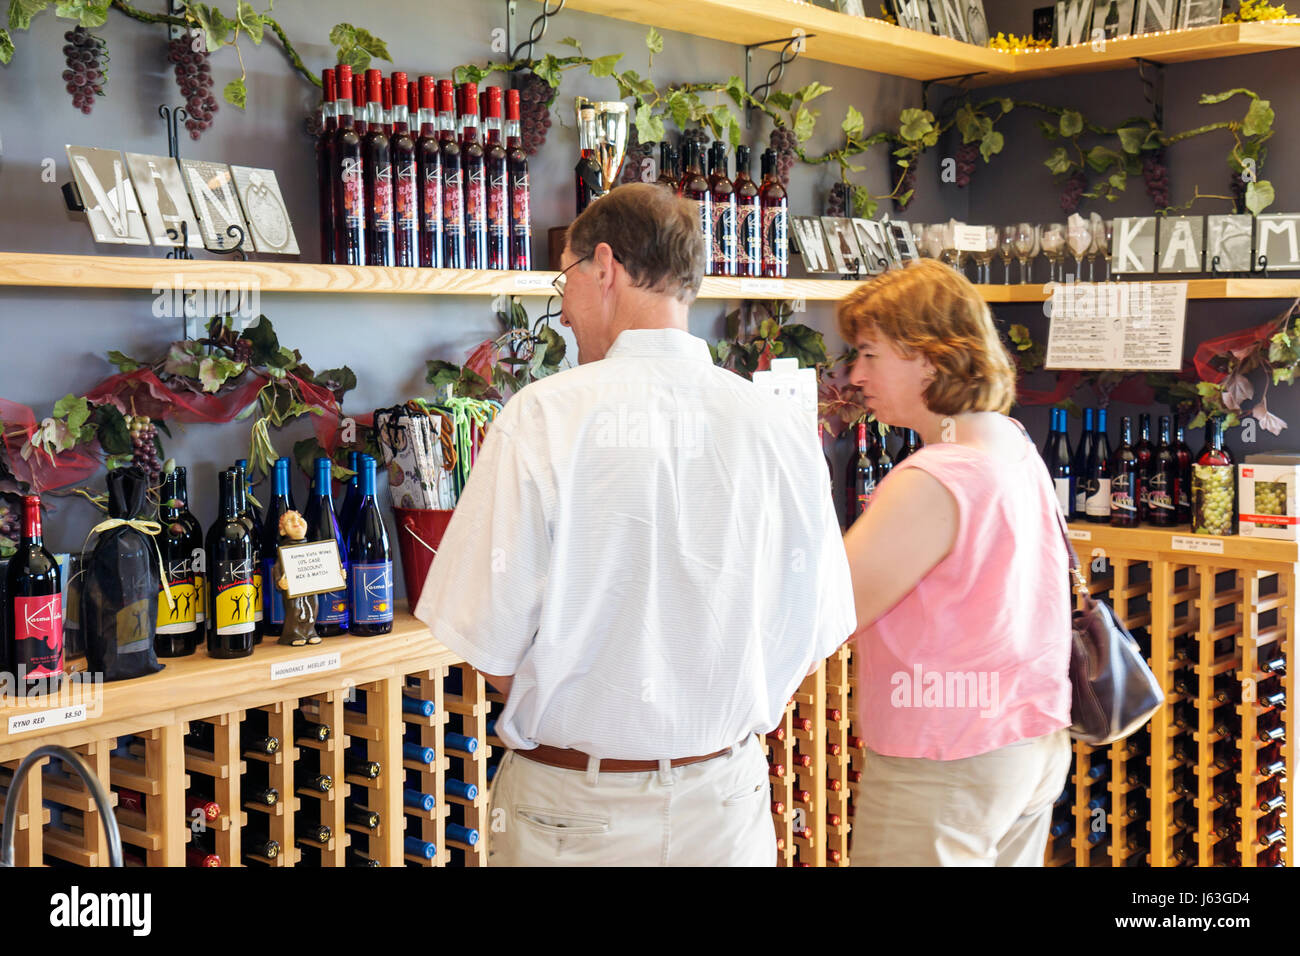 Michigan Coloma Karma Vista Vineyards and Winery grapes farm agriculture estate bottled wine viticulture man woman - Stock Image